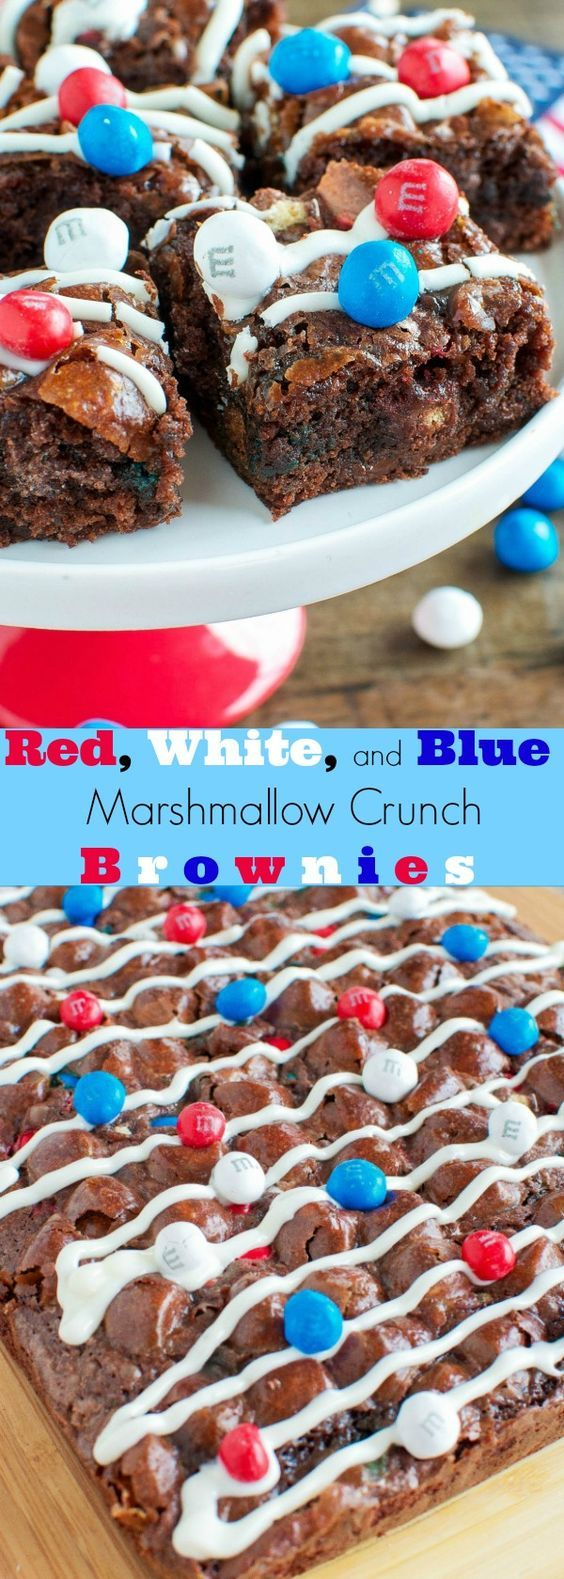 Red, White, and Blue Dessert Idea for Memorial Day. Try this recipe for Patriotic Marshmallow Crunch Brownies from @backforseconds at your weekend cookout!